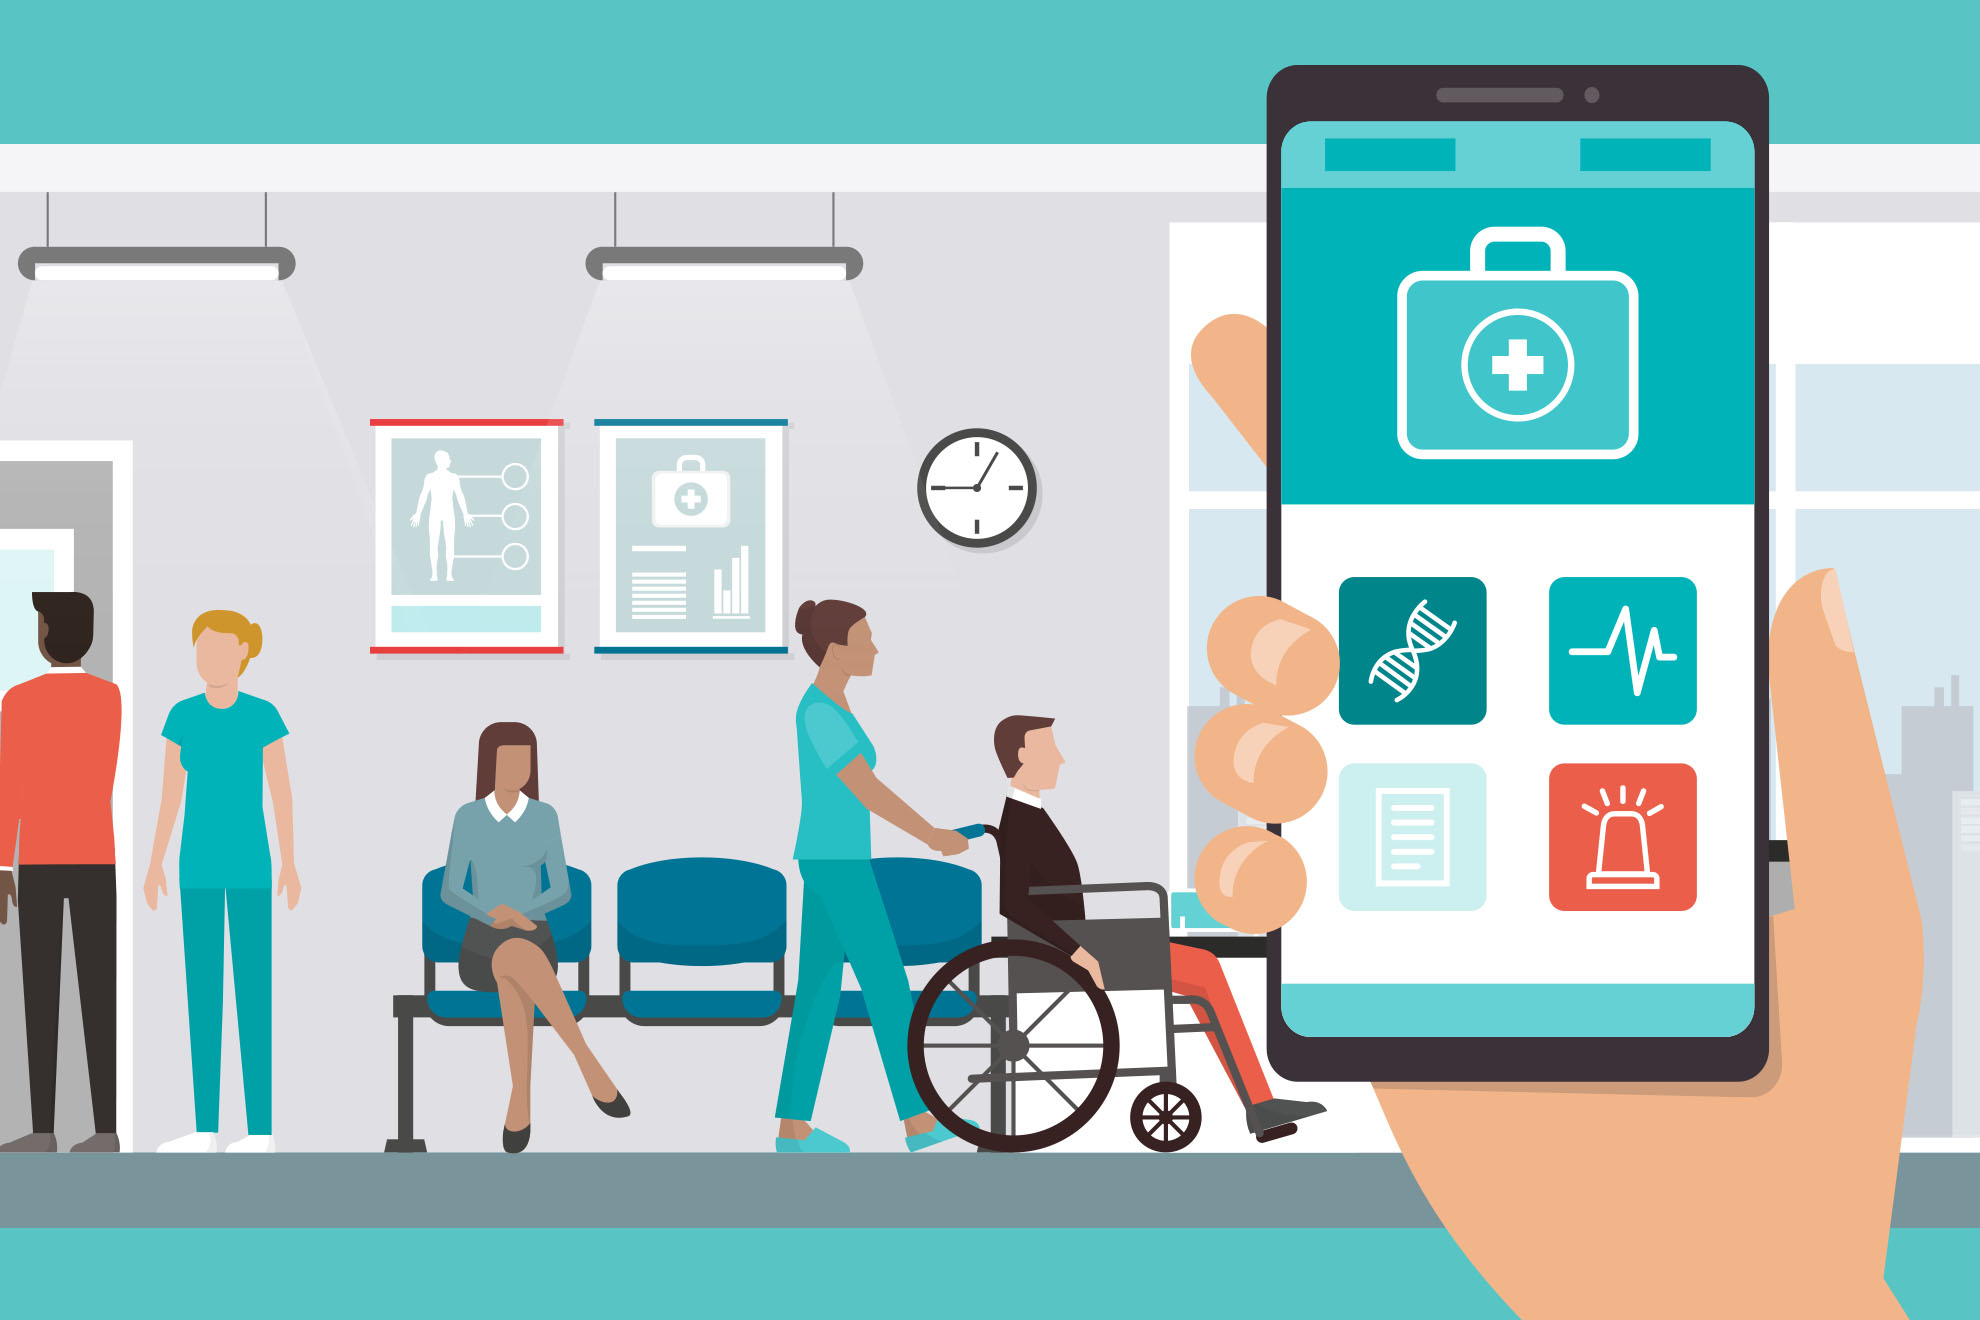 Olinqua releases hospital mobile communication application available through Wavelink